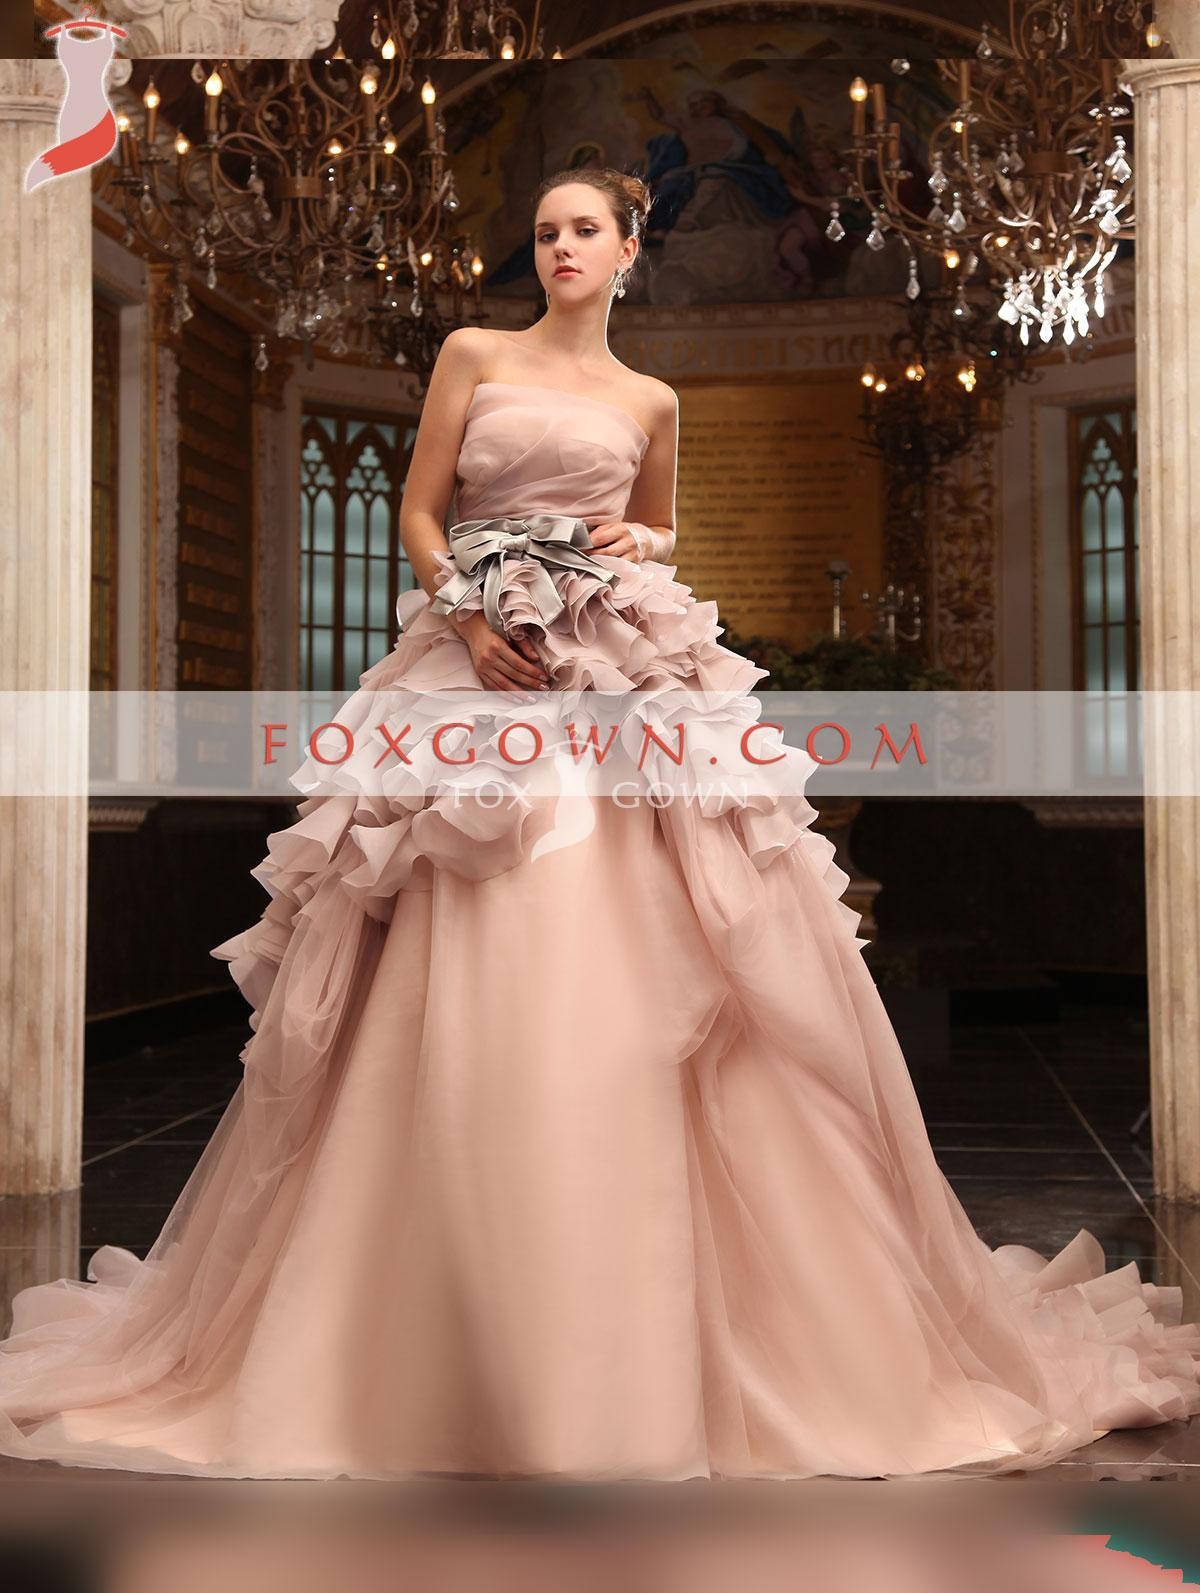 Blush Luxury A-line French Organza Wedding Dress with Ruffle Skirt and Long Train